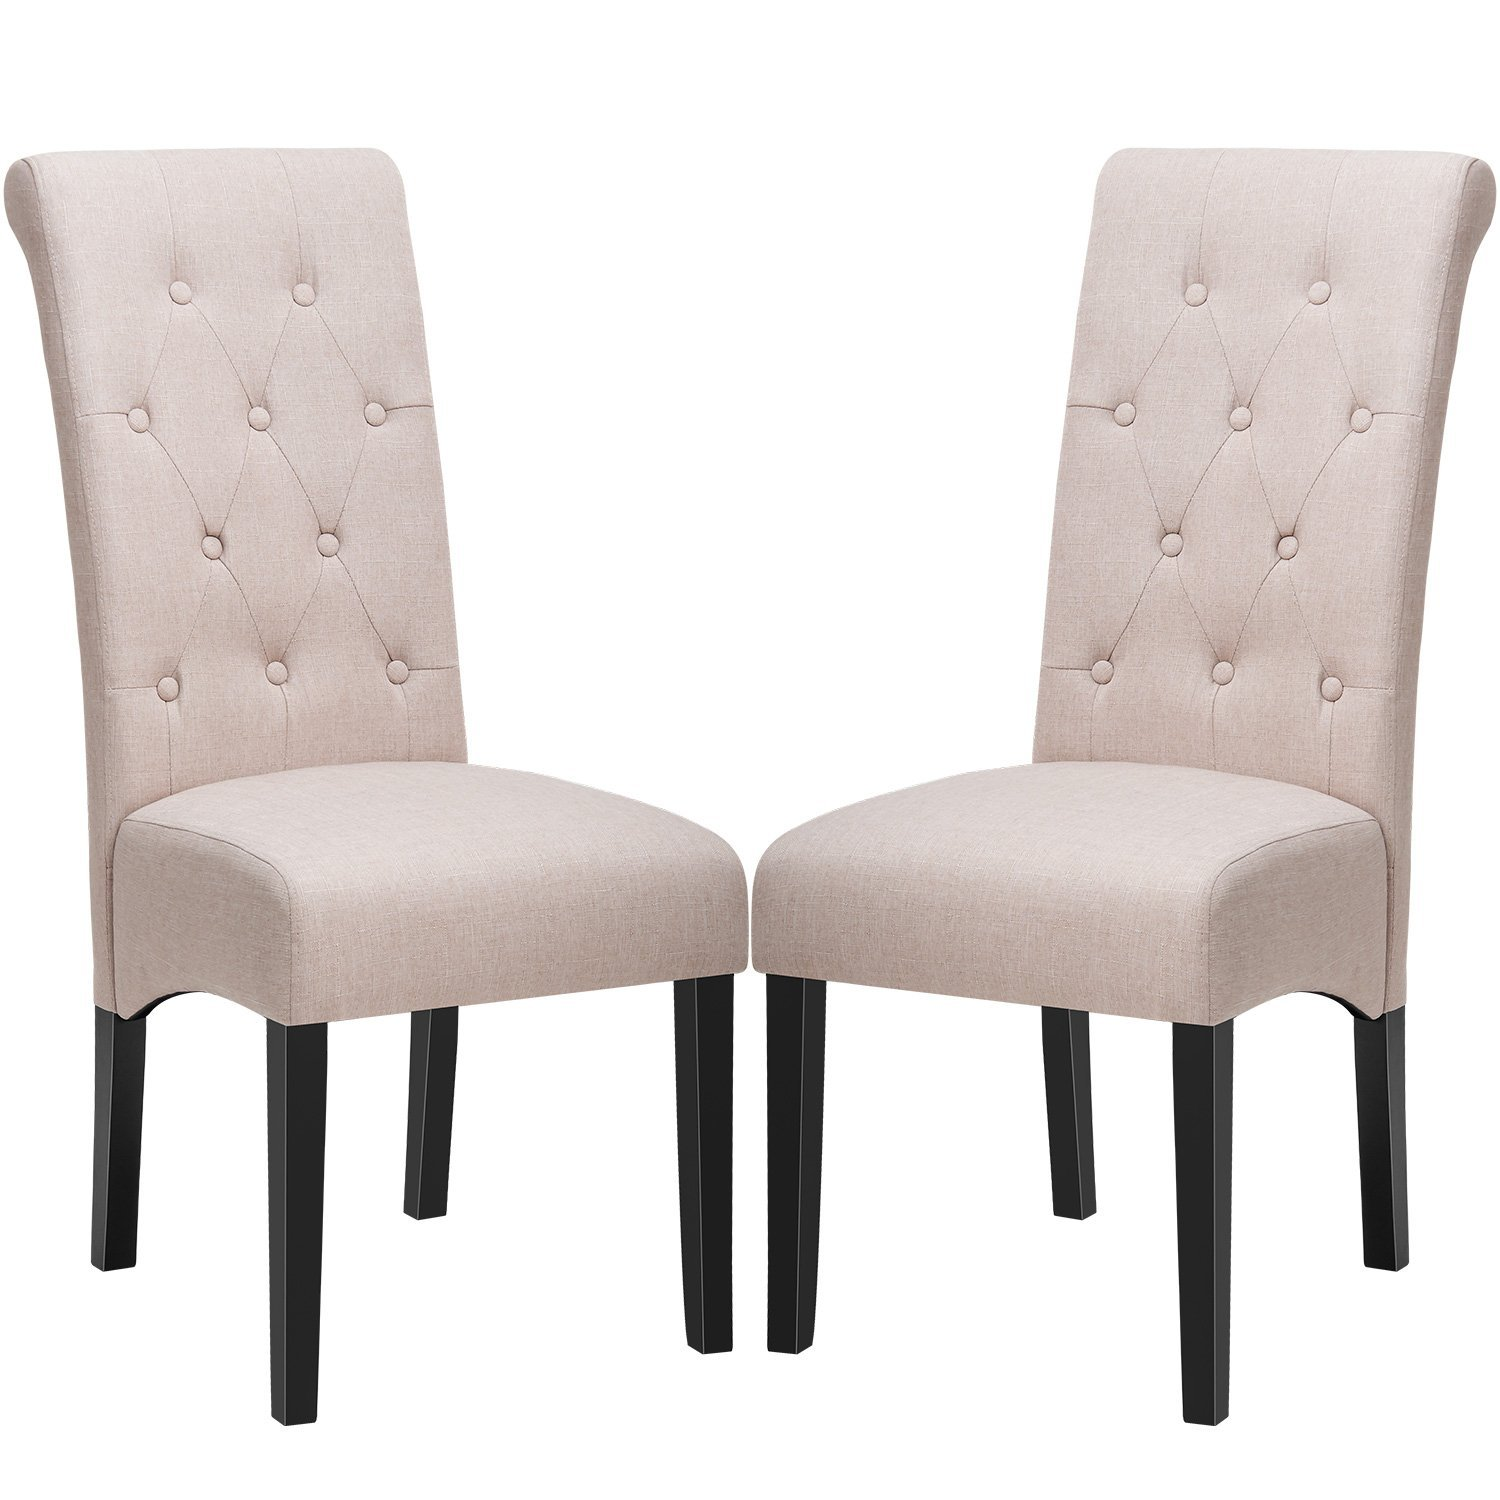 Dining Chairs Fabric Button Tufted Dining Chairs With Solid Wood Legs Set Of 2 Beige